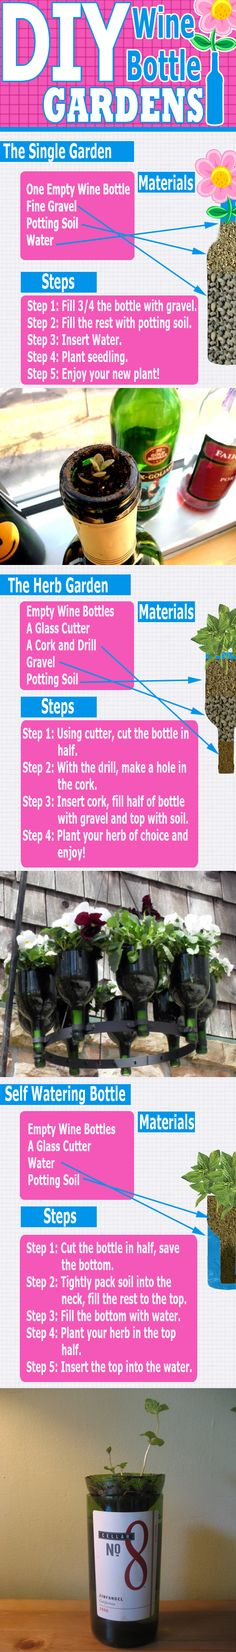 wines, idea, craft, diy wine, wine bottle gardening, bottl garden, gardens, wine bottles, bottl planter